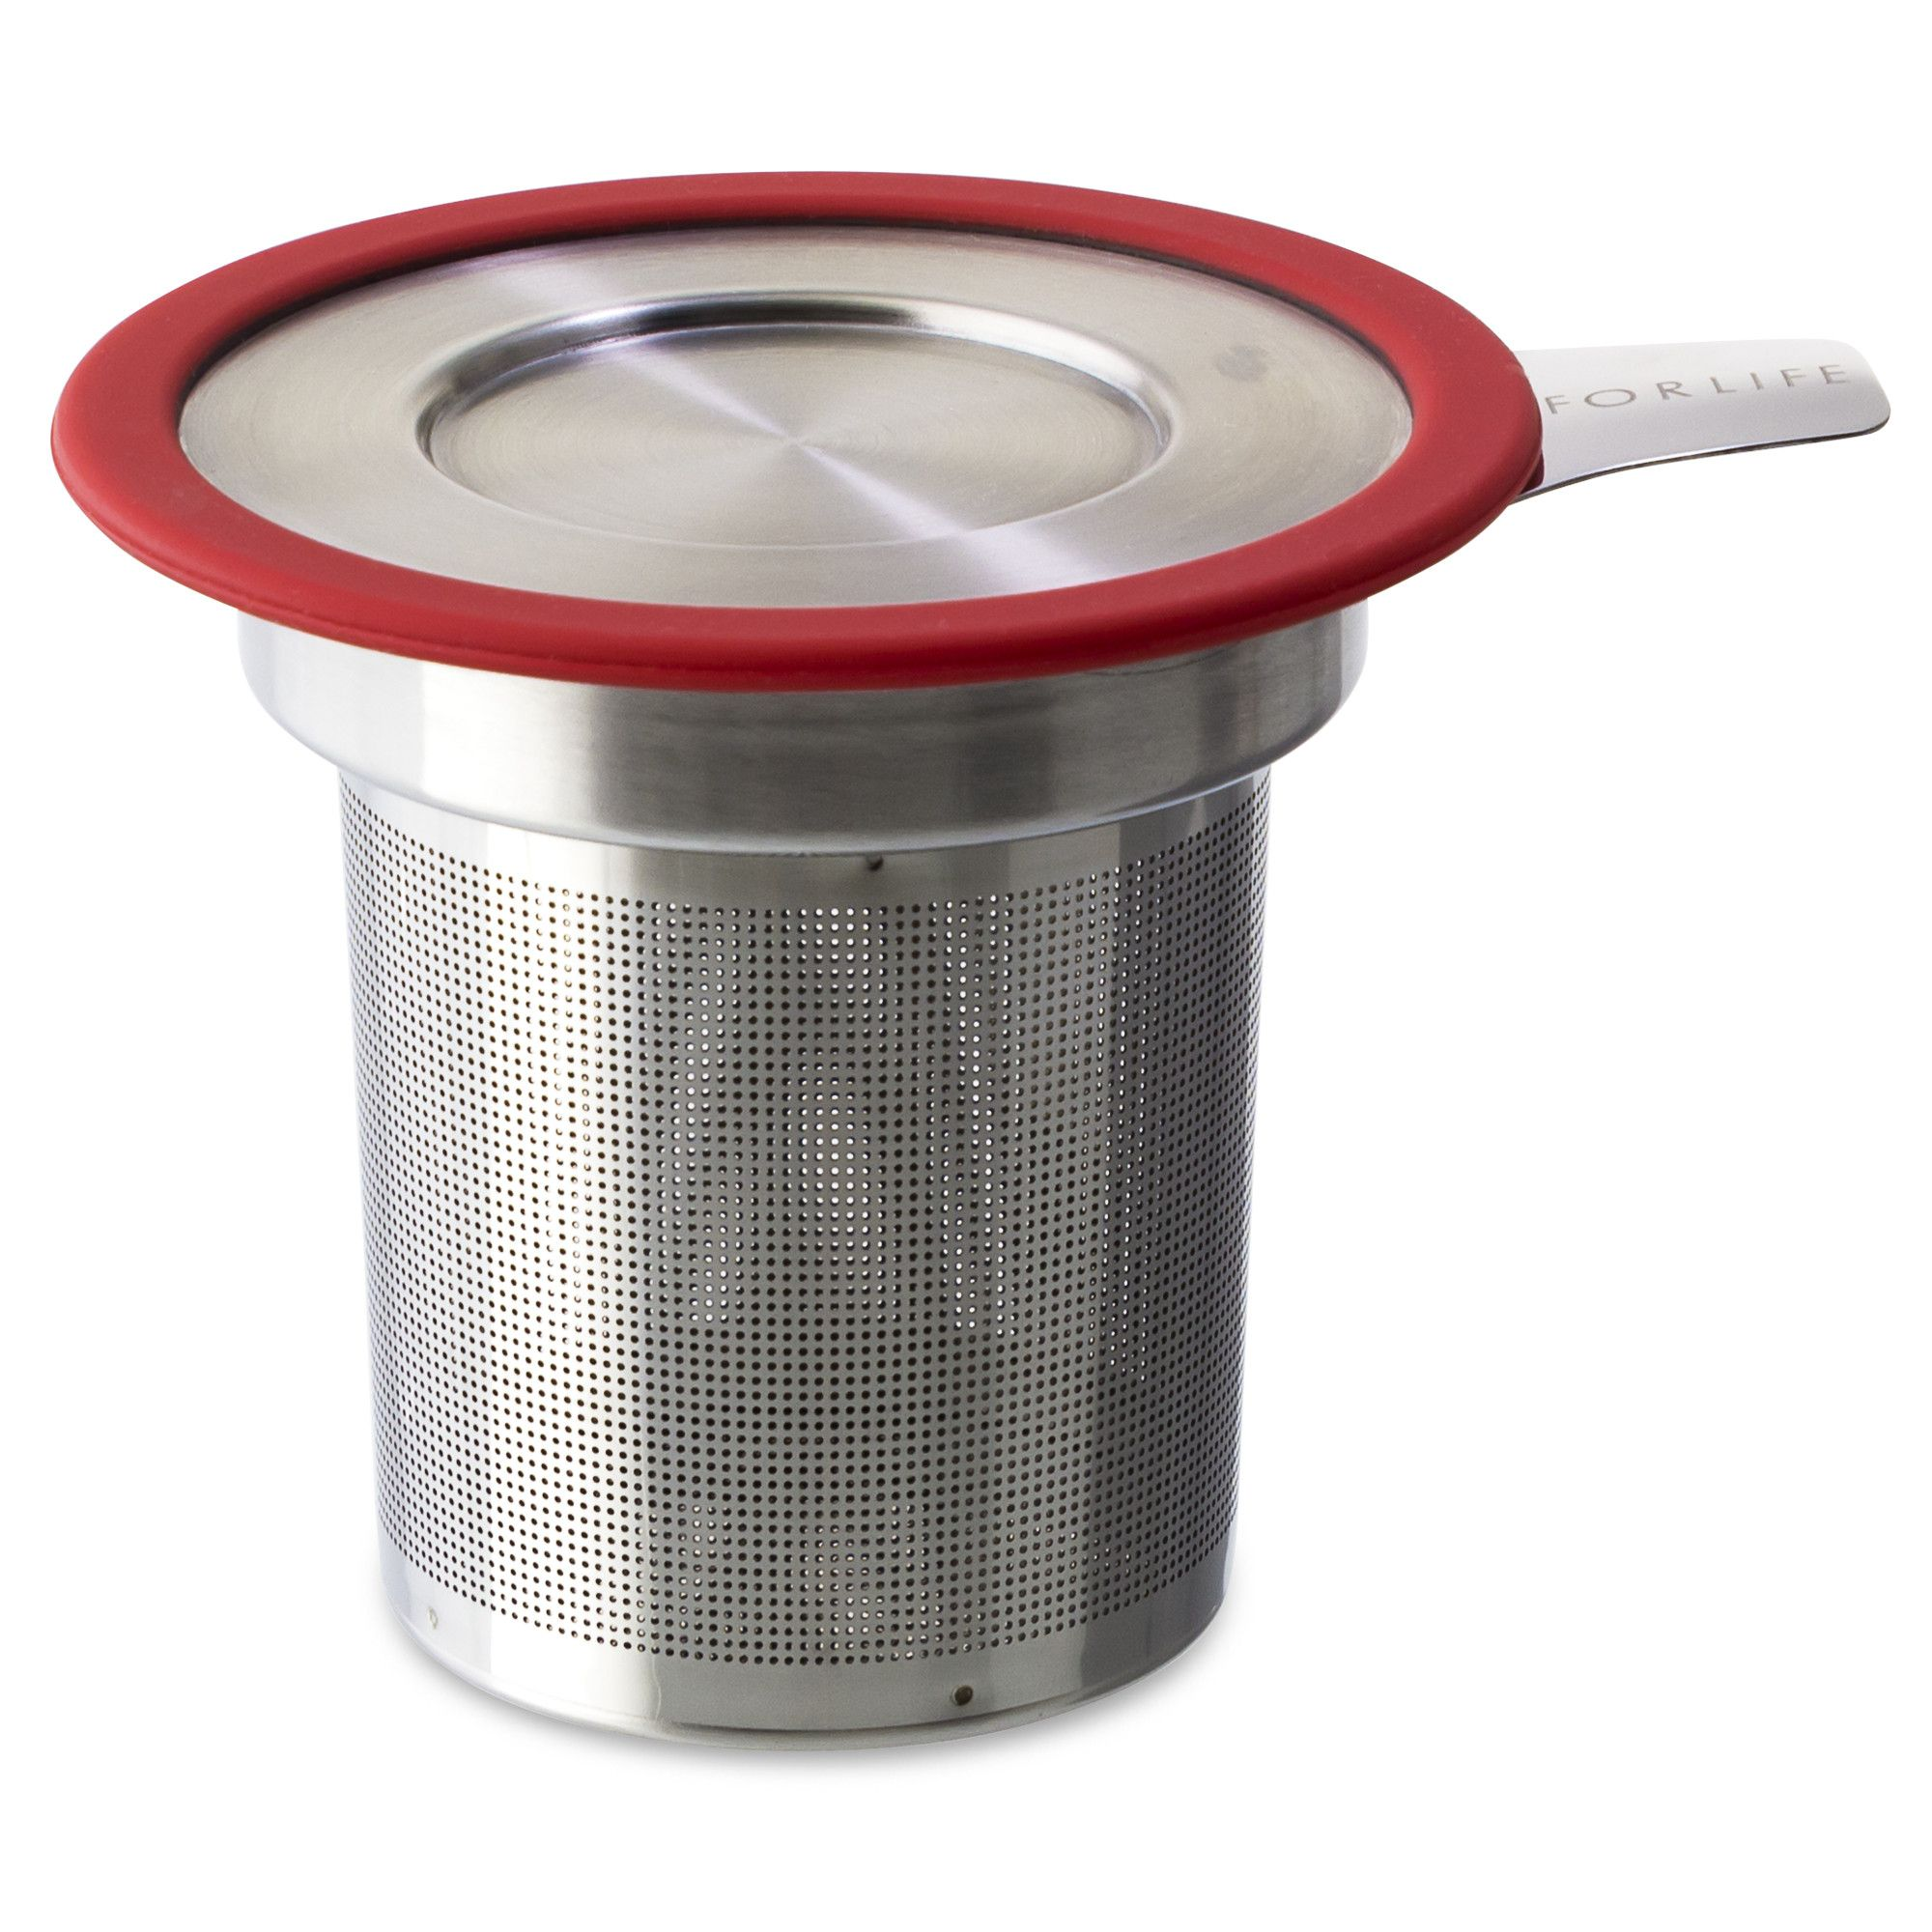 Large Stainless Steel Loose Tea Infuser (Strainer) with Lid - Good Life Tea